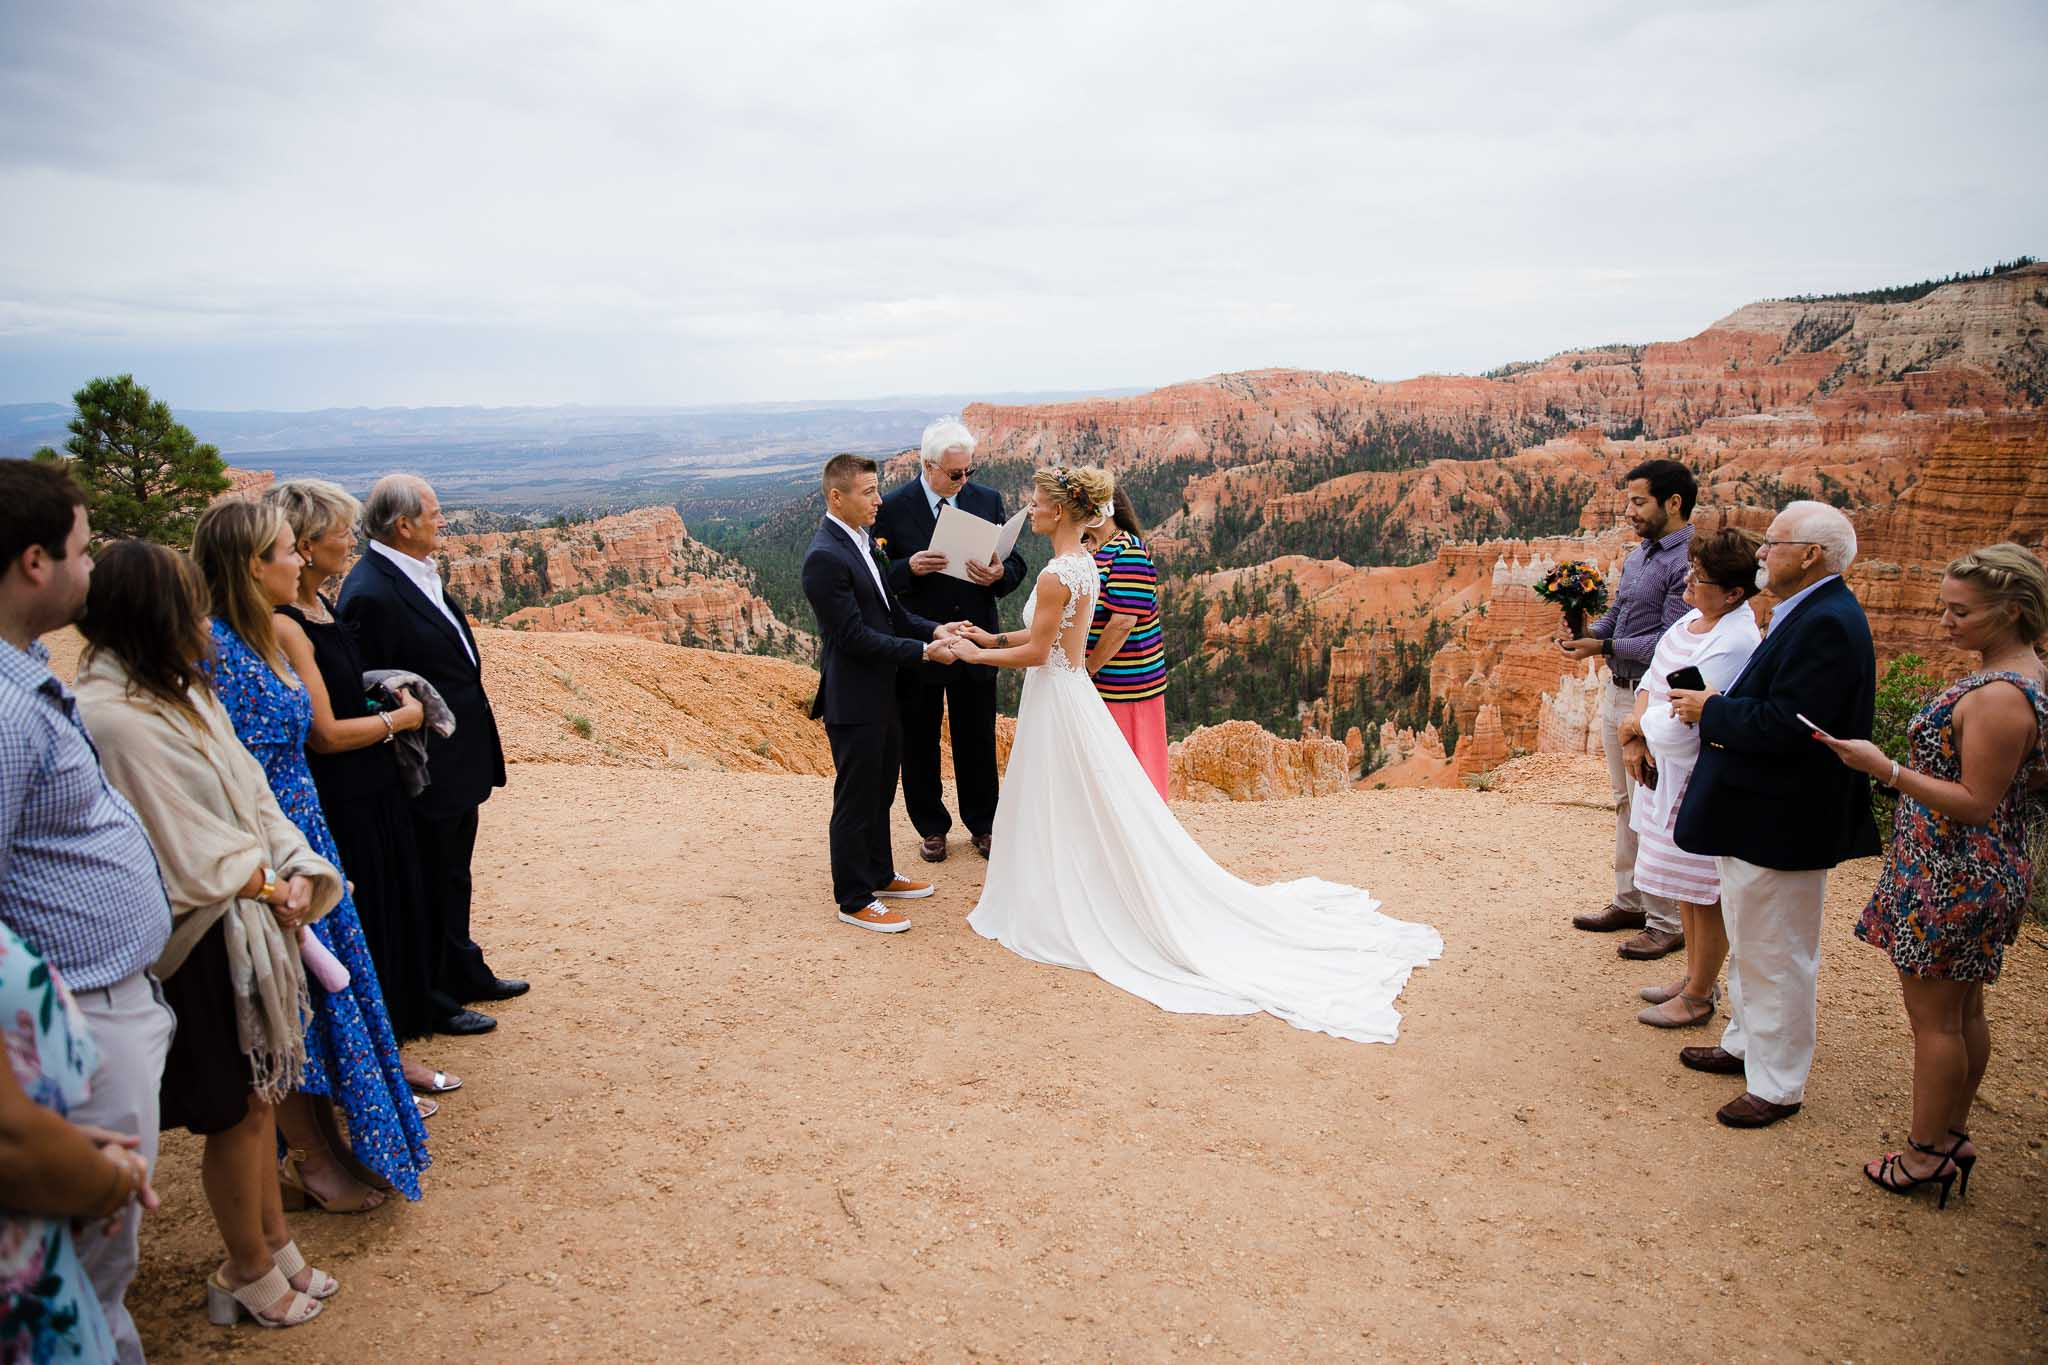 Intimate adventure elopement ceremony overlooking Bryce Canyon National Park in Utah